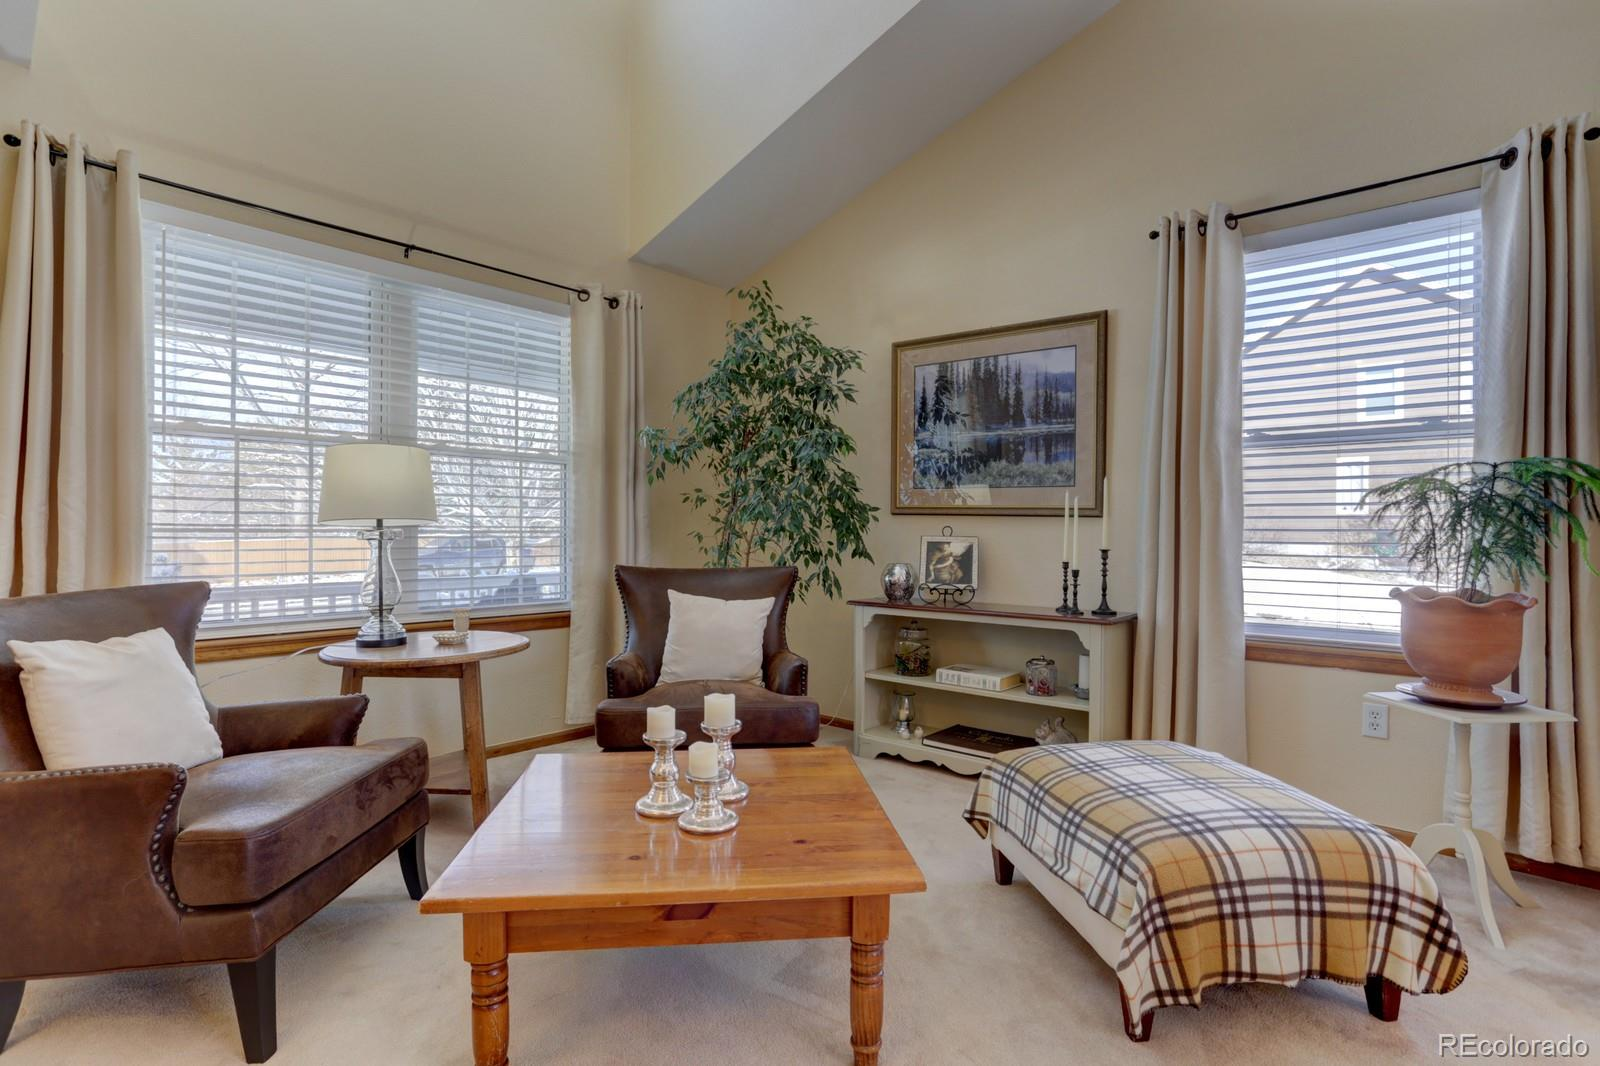 MLS# 5985159 - 5 - 9991 Spring Hill Place, Highlands Ranch, CO 80129